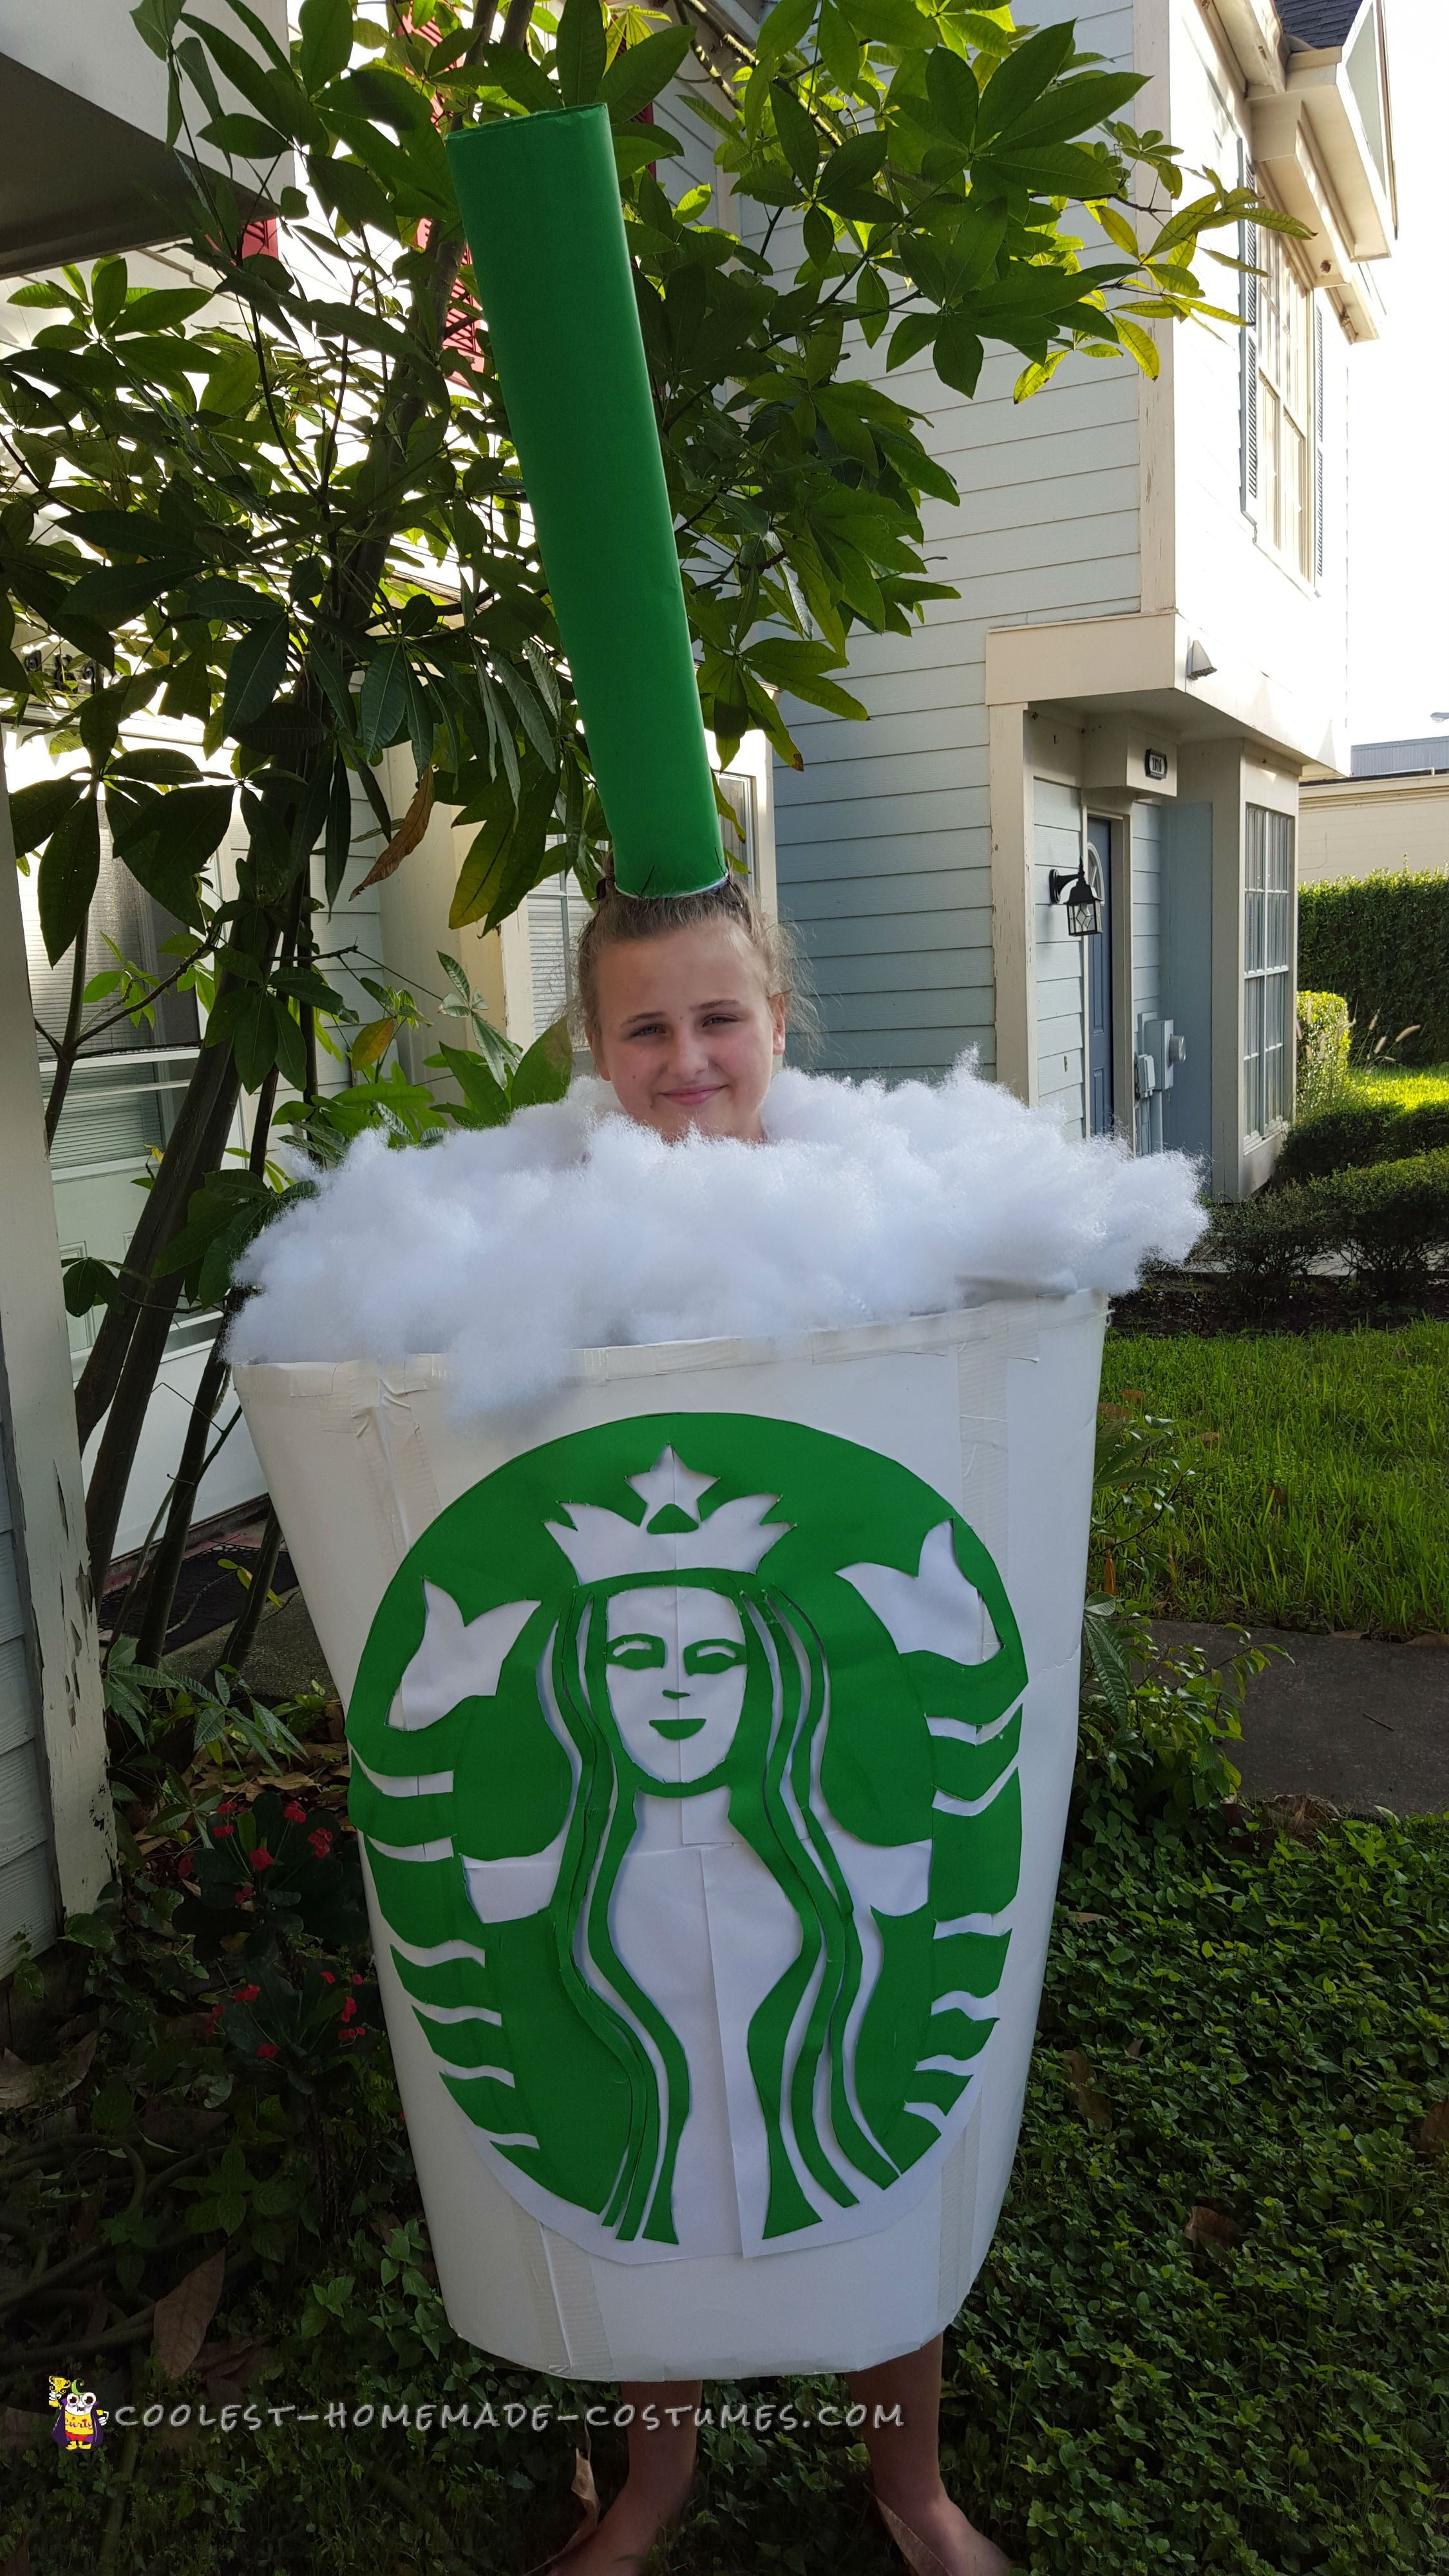 Coolest Starbucks Giant Cup 1st Place Costume... Coolest